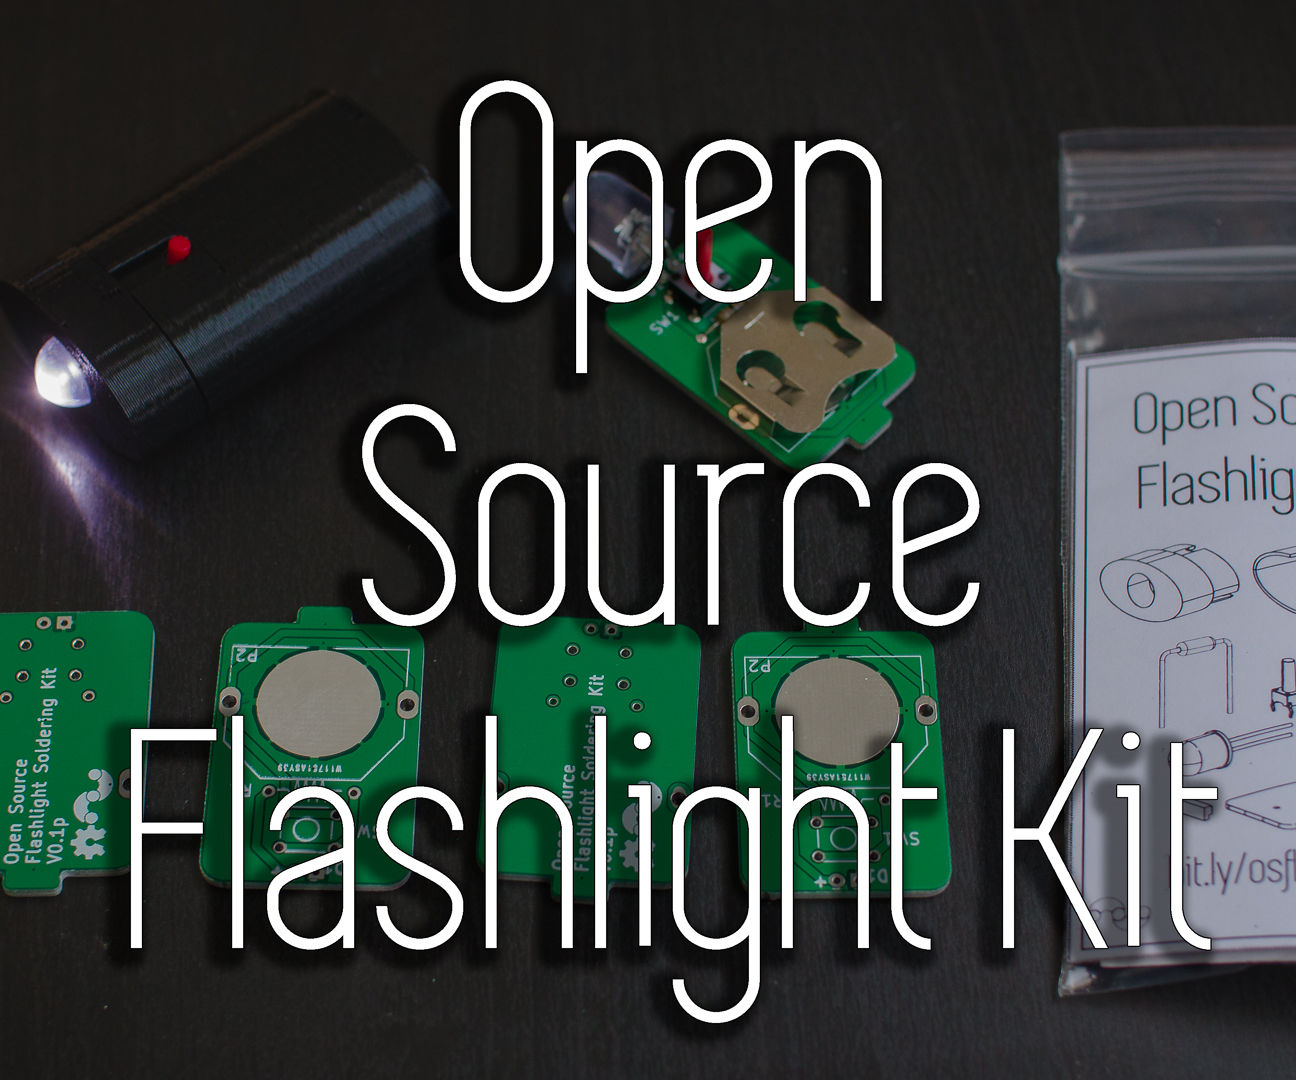 Open Source Flashlight Kit